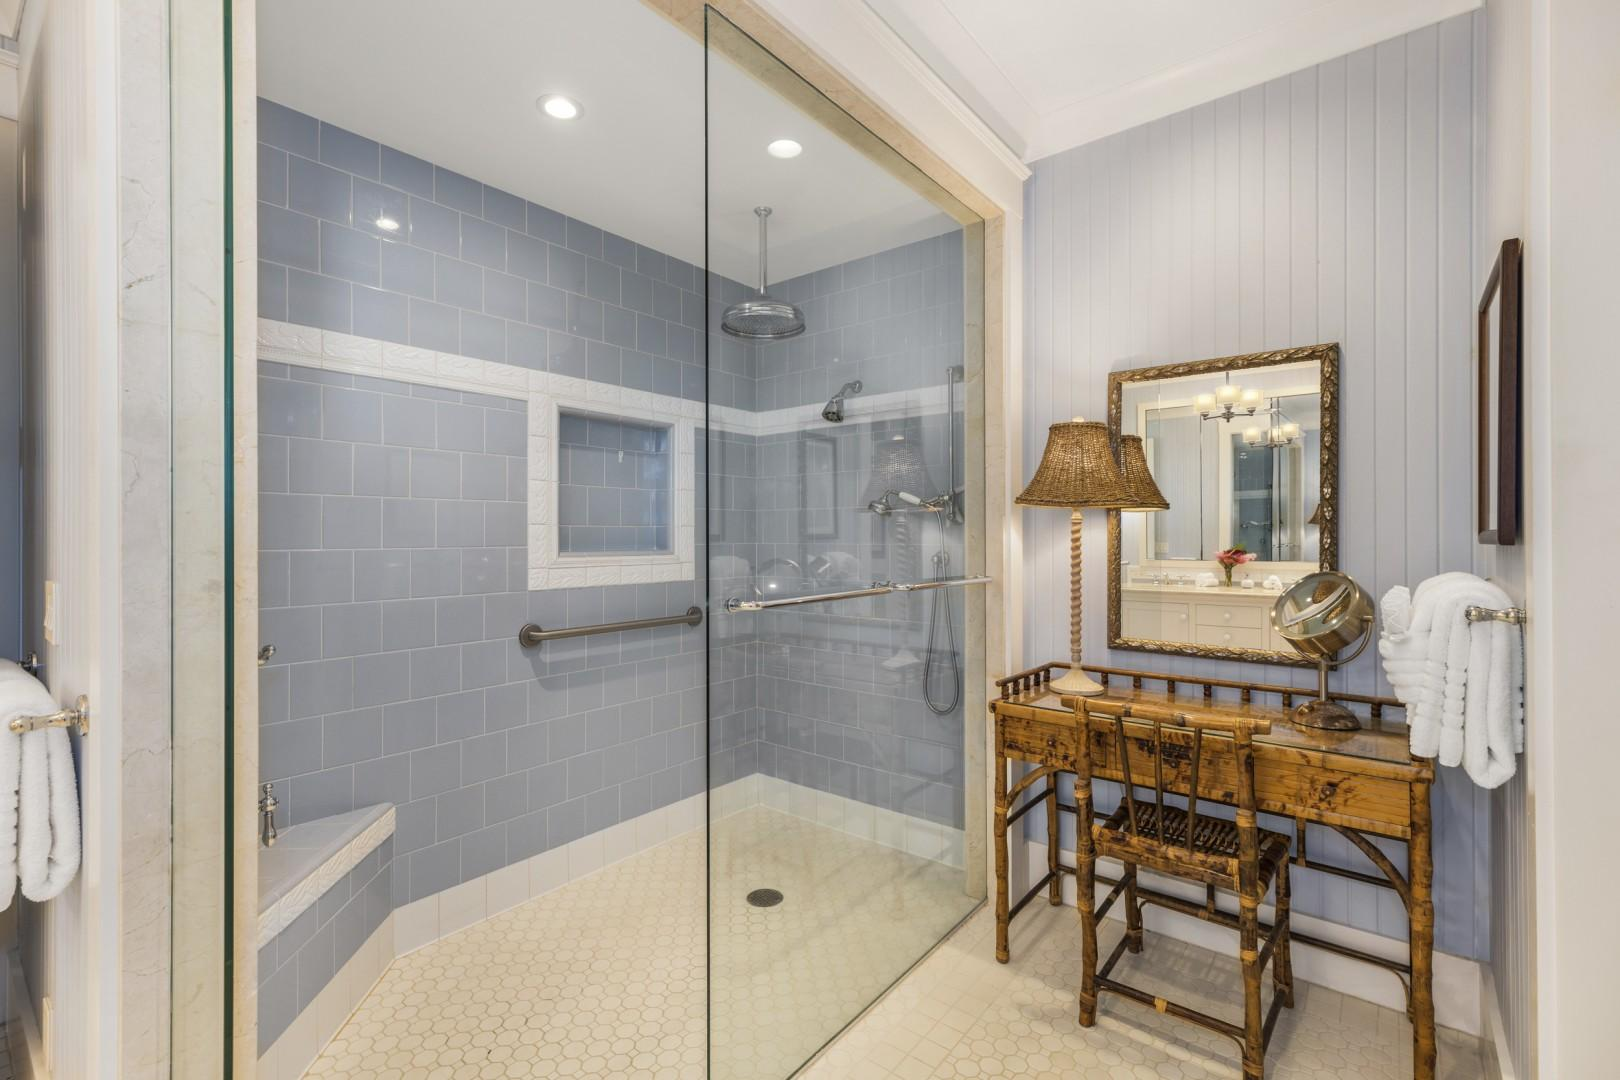 Walk-in shower with three showerhead options: rainfall, wall, or handheld